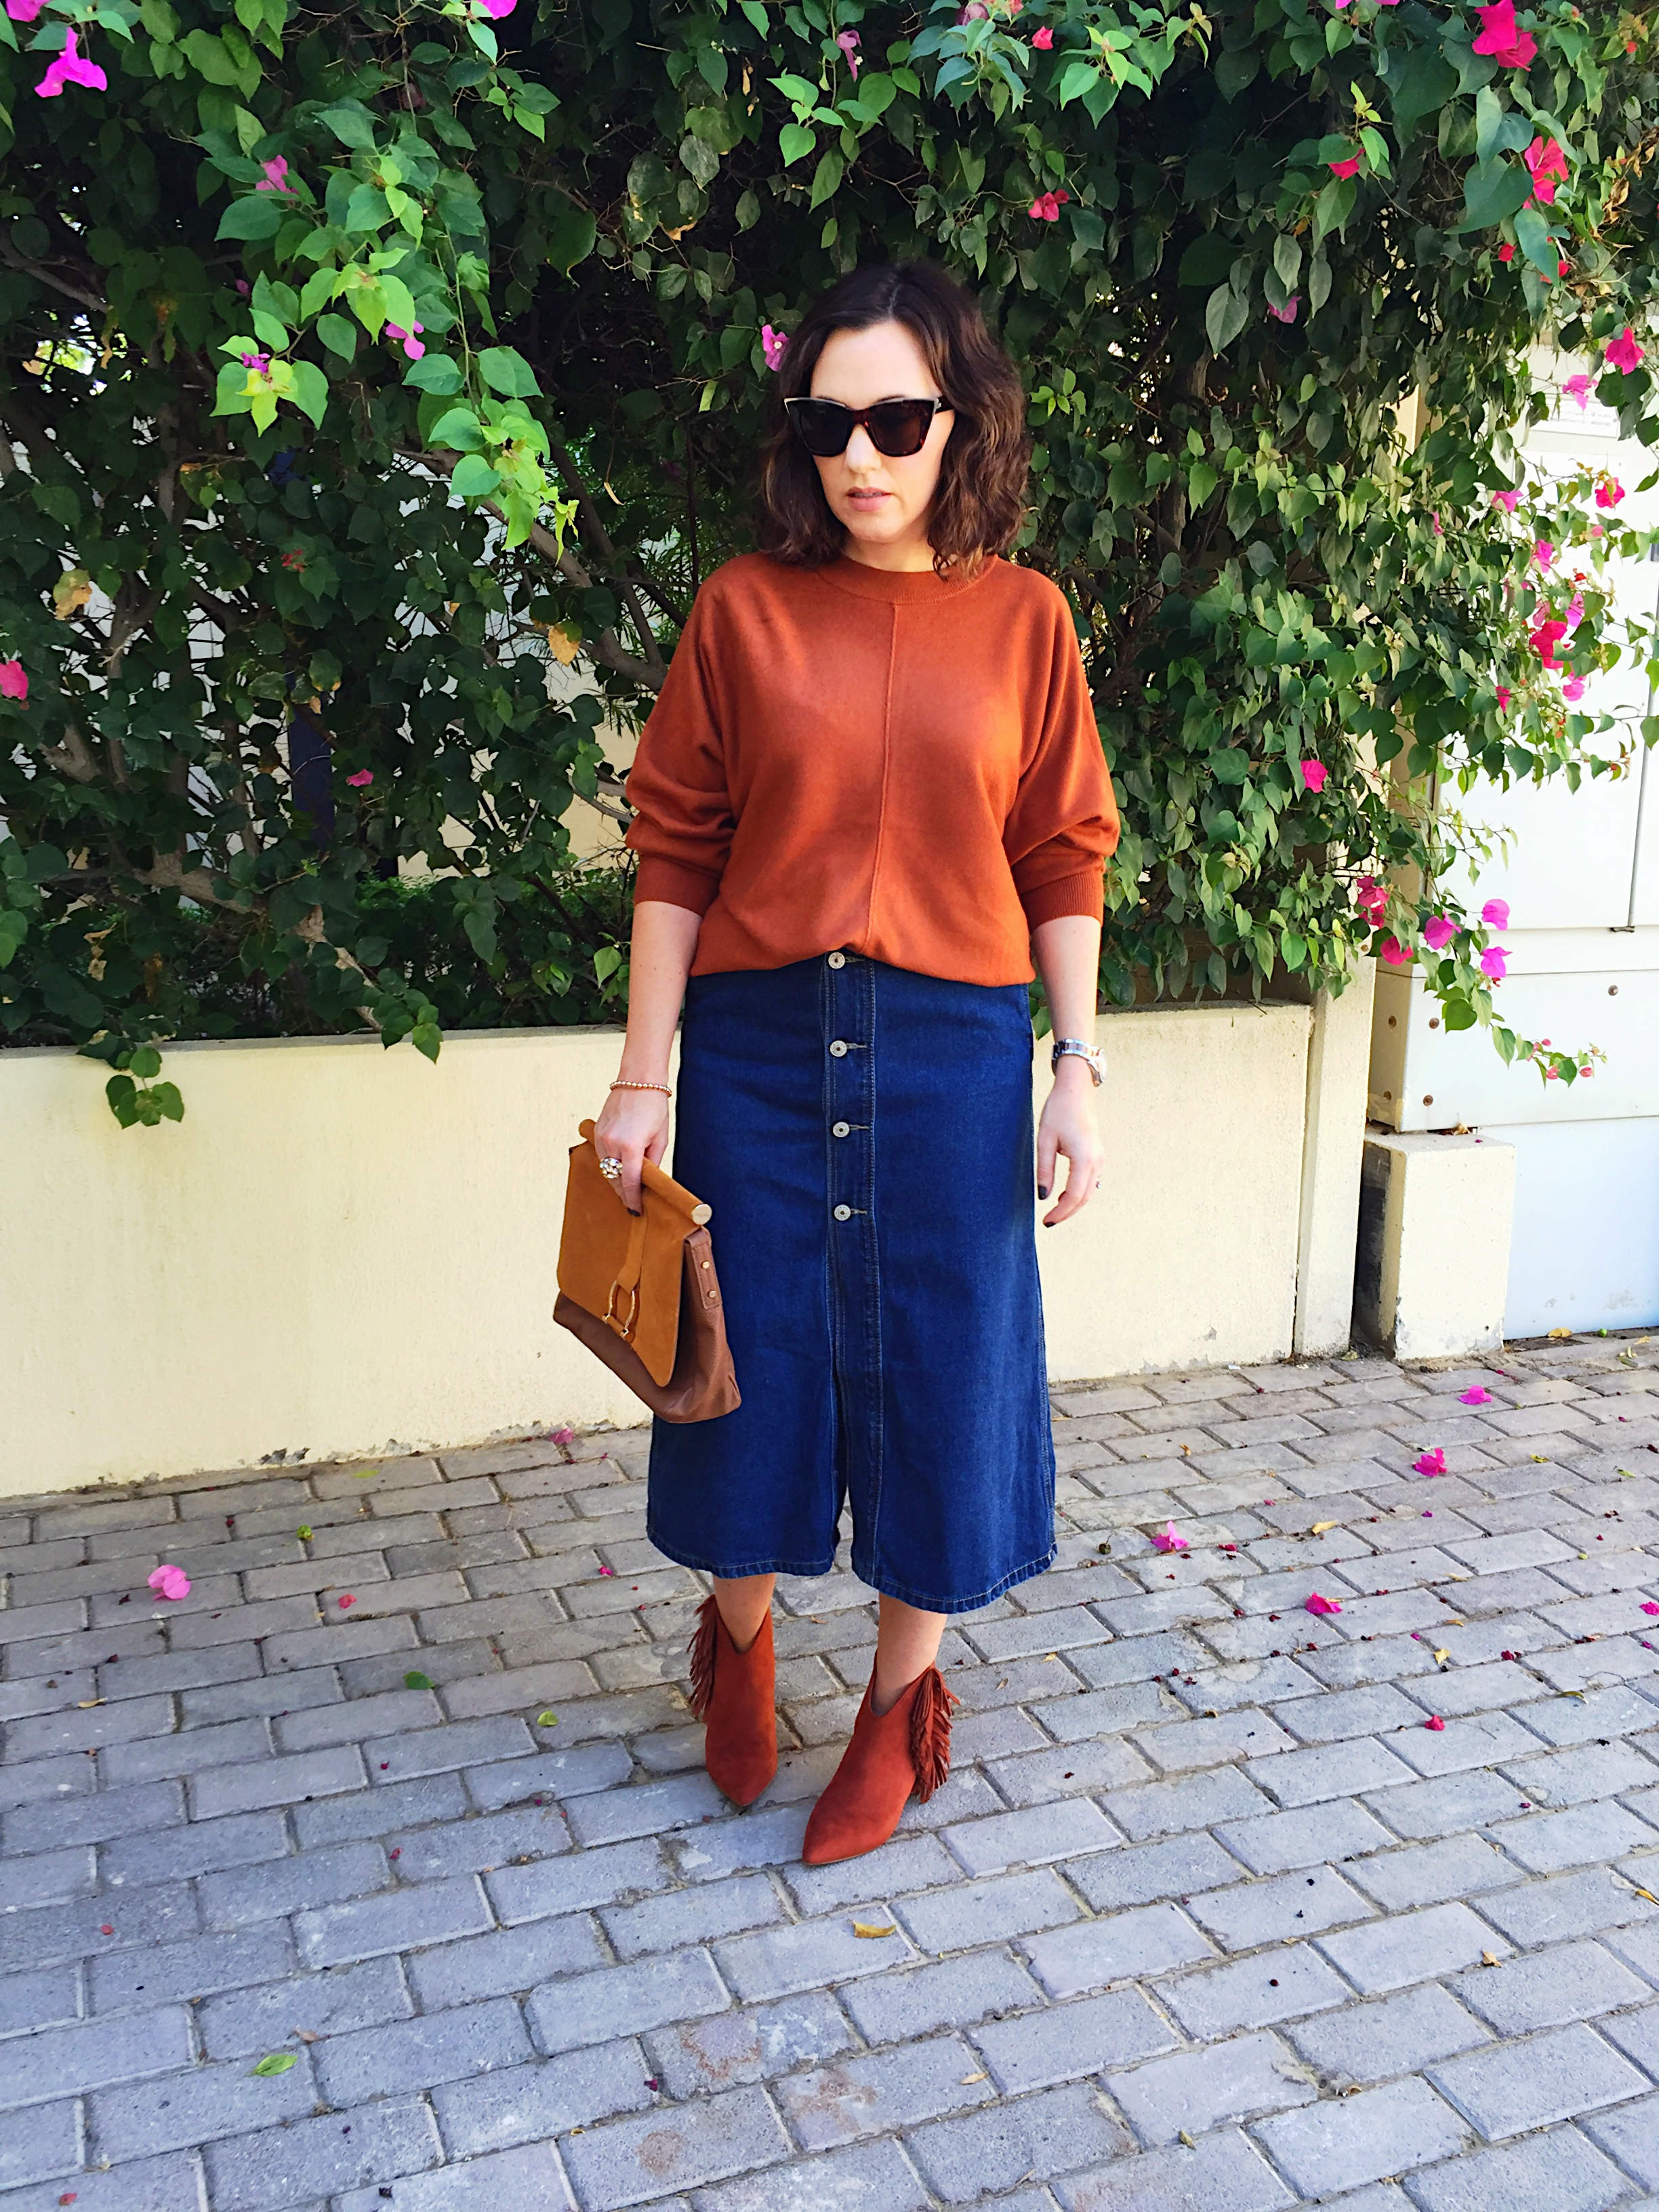 denim-midi-skirt-post-blog-gingham-and-sparkle-blogger-fashion-style-outfit-look-ootd-fringe-boots-burnt-orange-copper-button-detail-asos-penneys-primark-heels-h&m-dubai-ireland-irish-shopping-boohoo